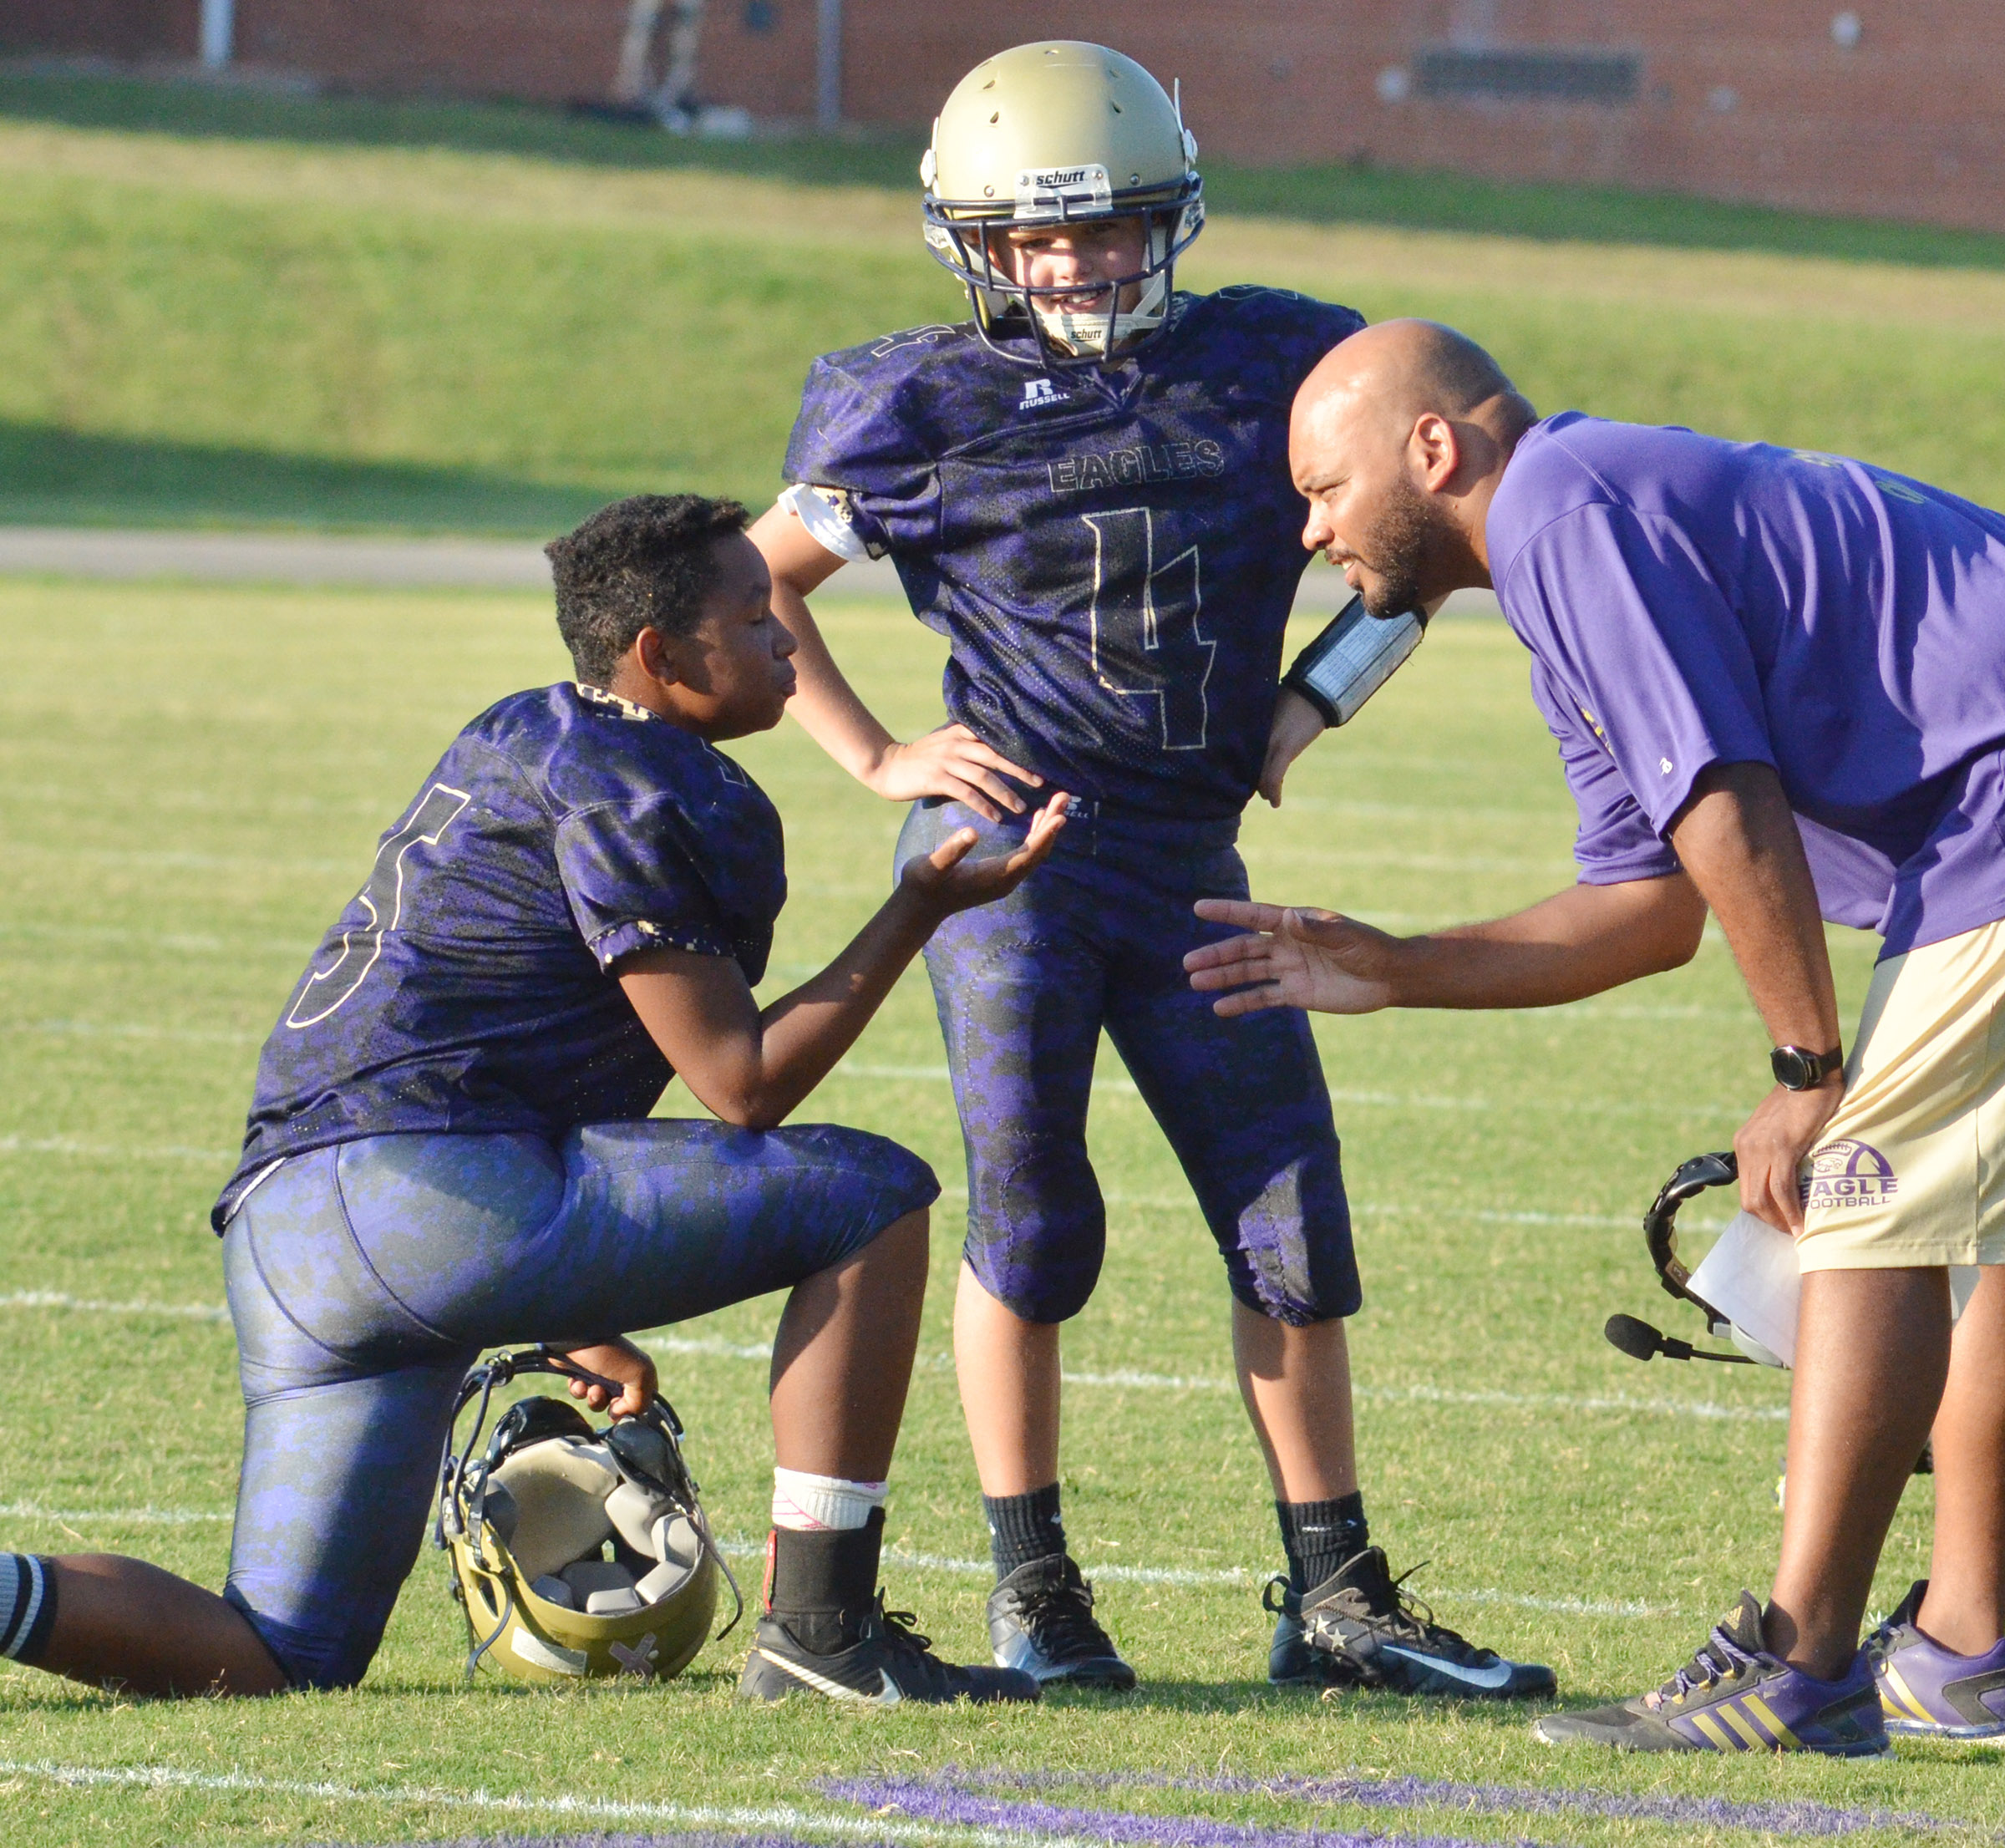 CMS seventh-graders Deondre Weathers, at left, and Konner Forbis talk to head coach Aaron Webb during a time out.